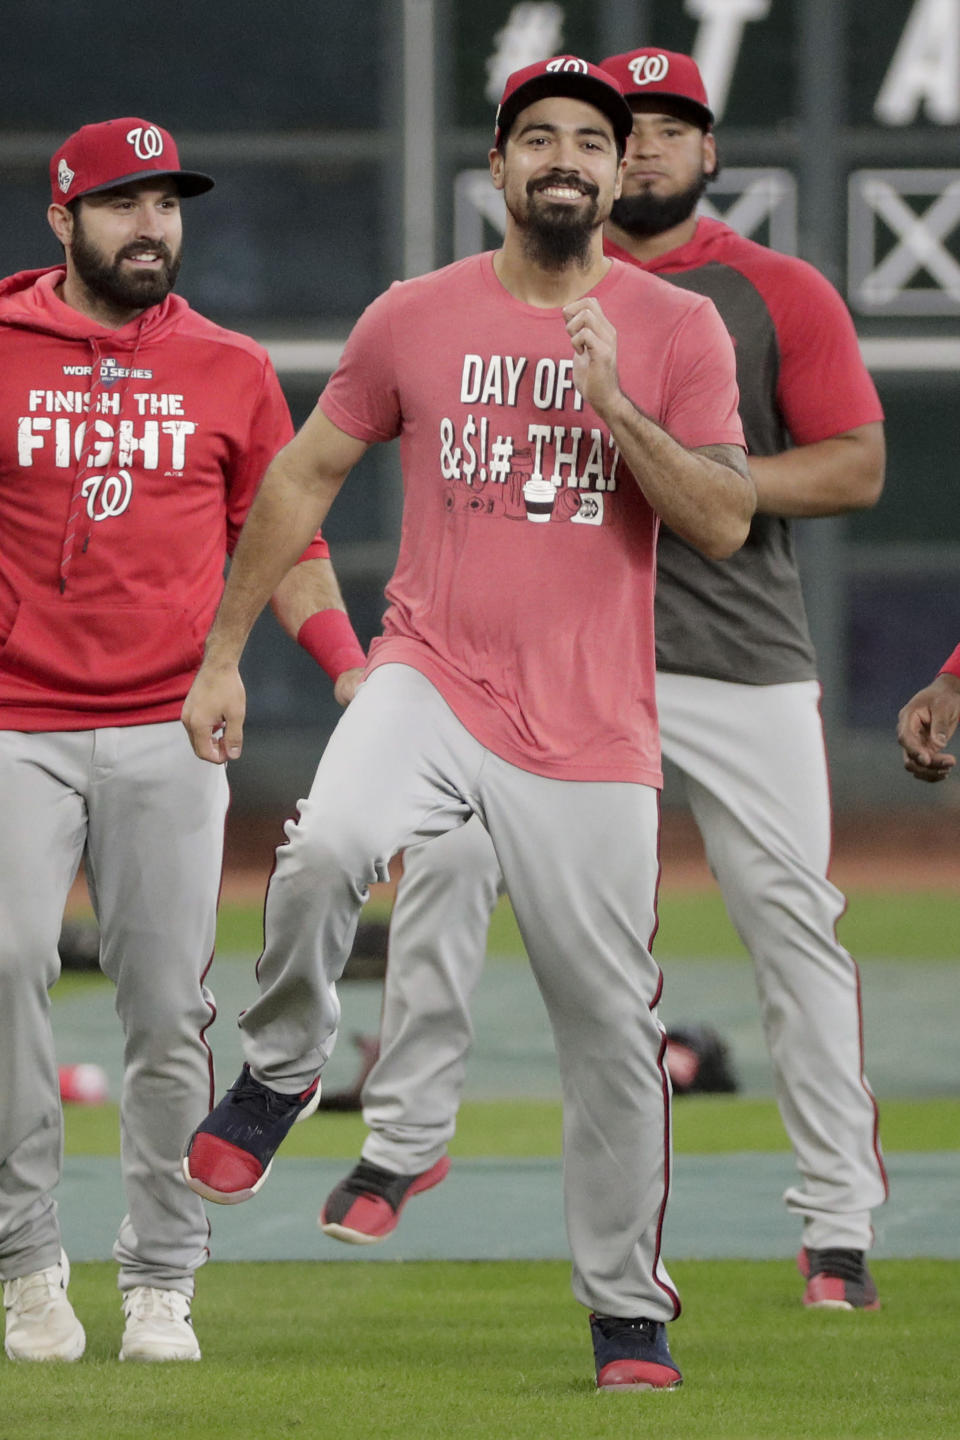 Washington Nationals third baseman Anthony Rendon warms up during batting practice for baseball's World Series Monday, Oct. 21, 2019, in Houston. The Houston Astros face the Washington Nationals in Game 1 on Tuesday. (AP Photo/David J. Phillip)